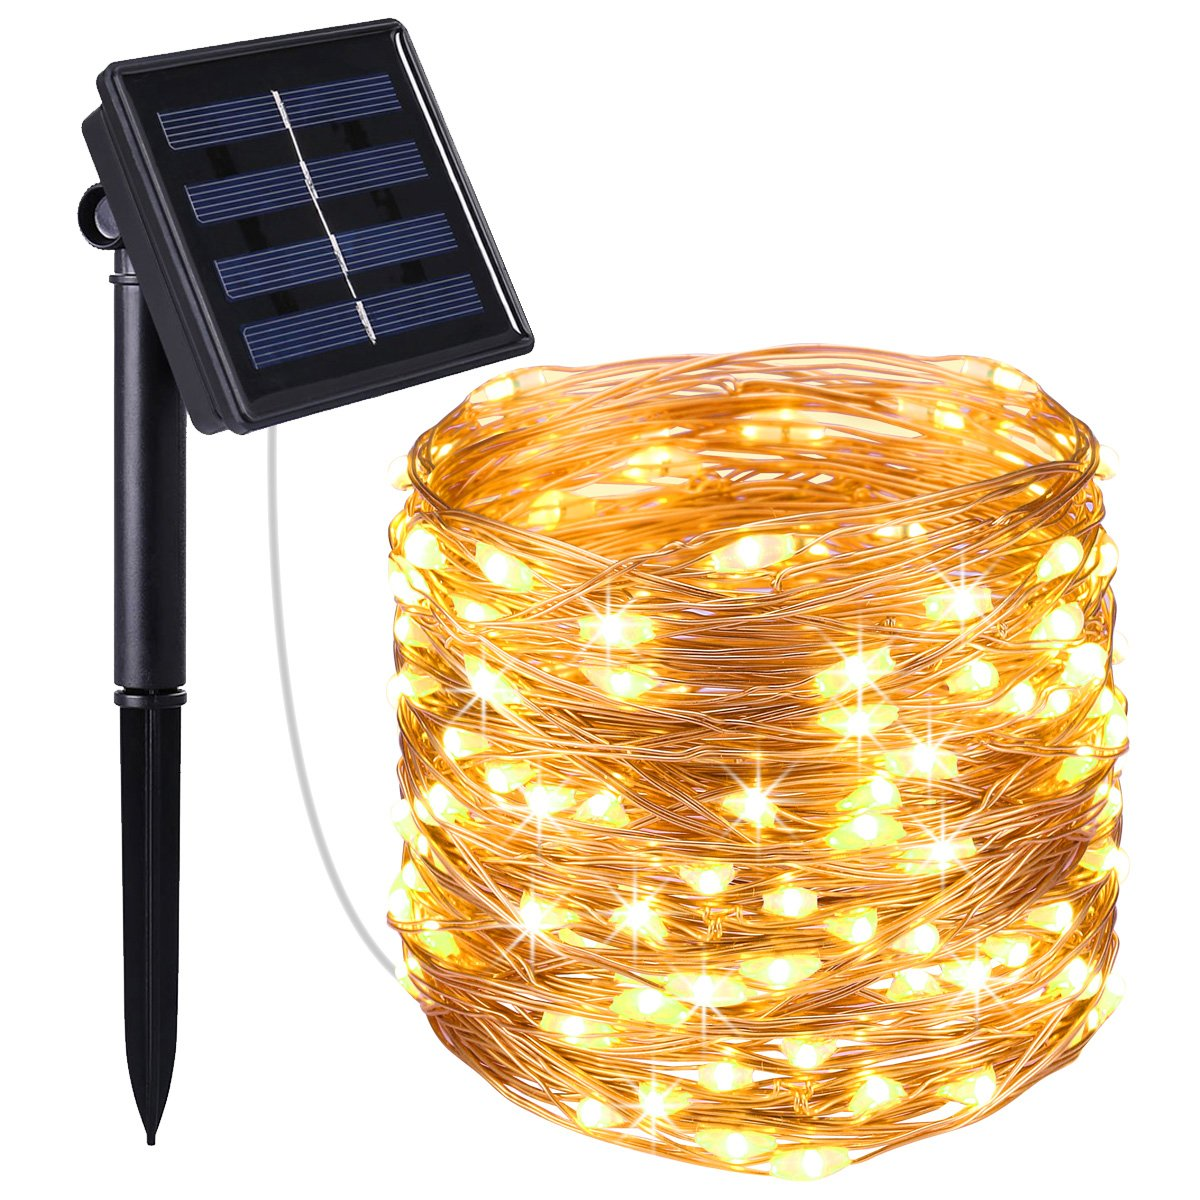 Best beer lights for bars amazon amir solar powered string lights 100 led copper wire lights starry string lights indoor outdoor waterproof solar decoration lights for gardens home aloadofball Gallery